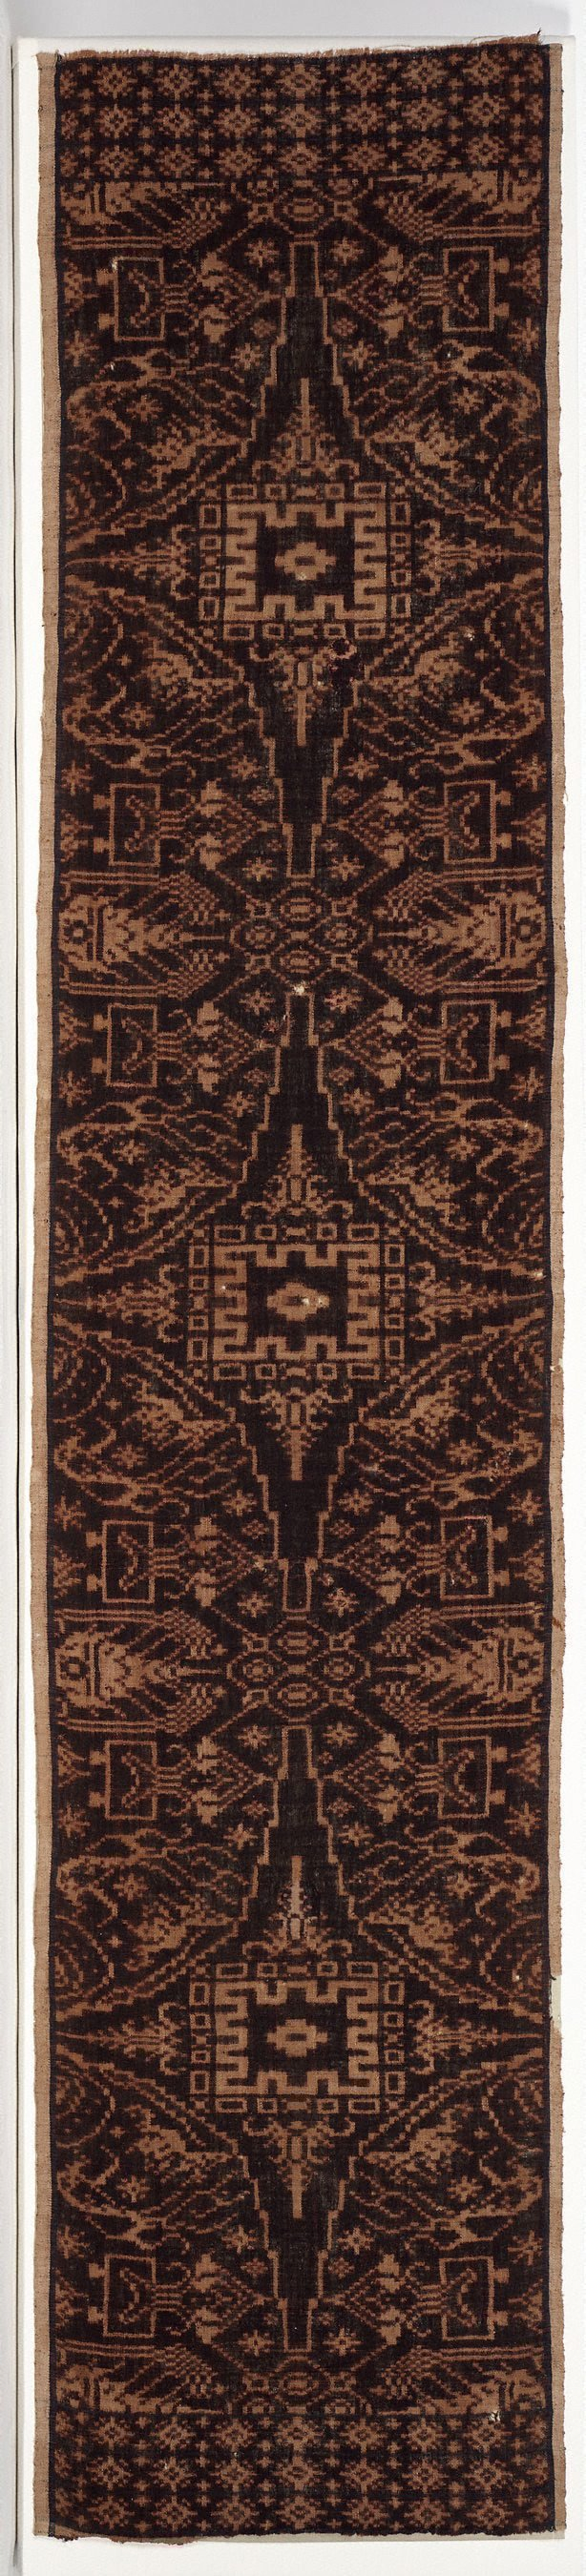 An image of Ceremonial cloth ('kamben geringsing')